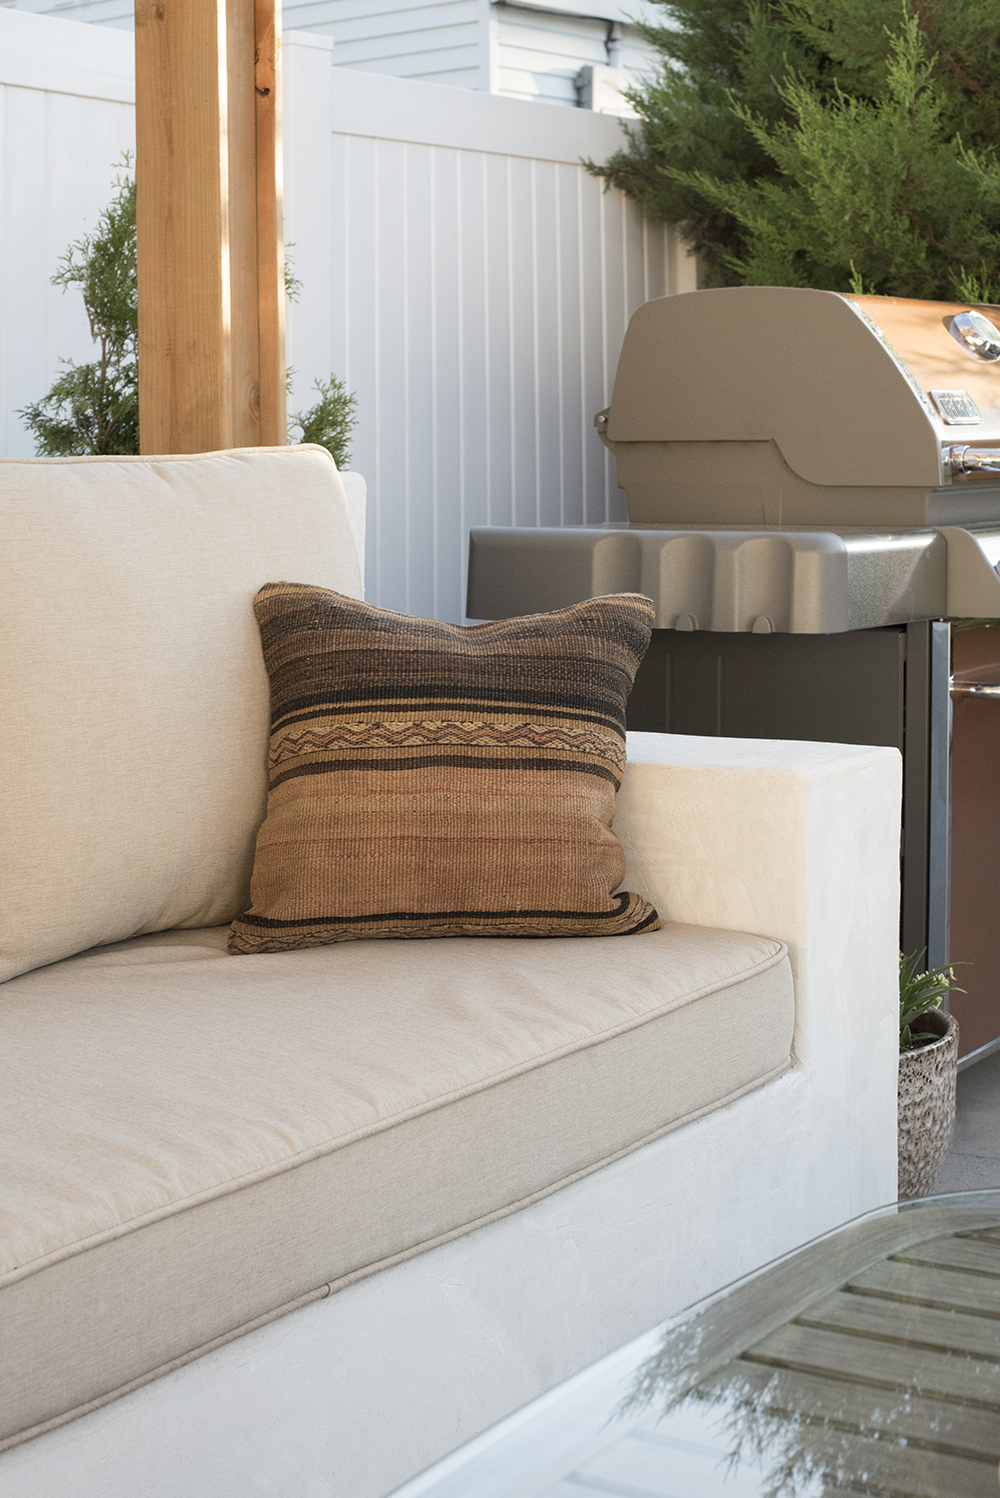 Diy Outdoor Couch Room For Tuesday